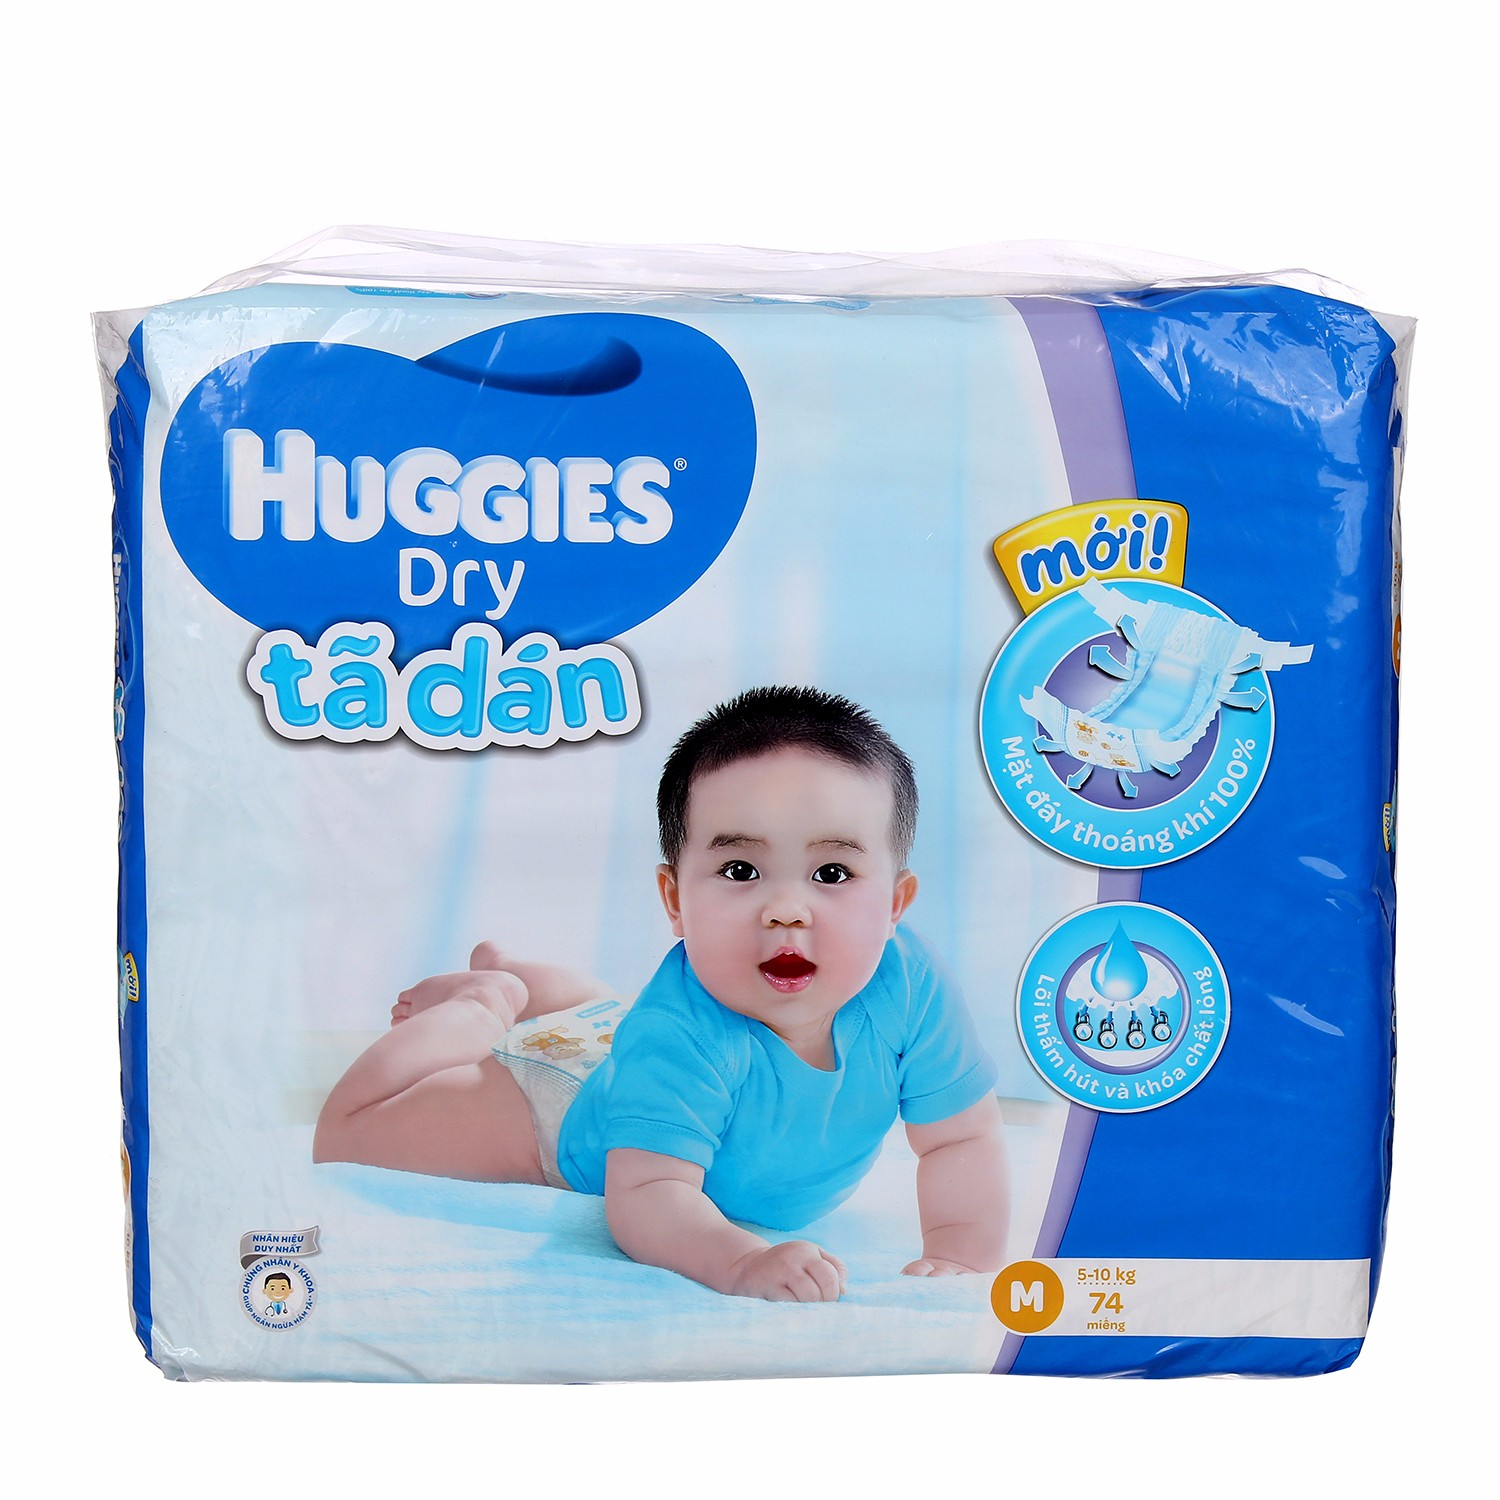 Only at Walmart. See more special offers. Customer Rating. 4 Stars & Up. 3 Stars & Up. Huggies Diapers Size 5. Showing 40 of results that match your query. Search Product Result. HUGGIES Little Snugglers Diapers (Choose Size and Count) Size 3, Diapers. Product Image. Price $ 8. 96 - .